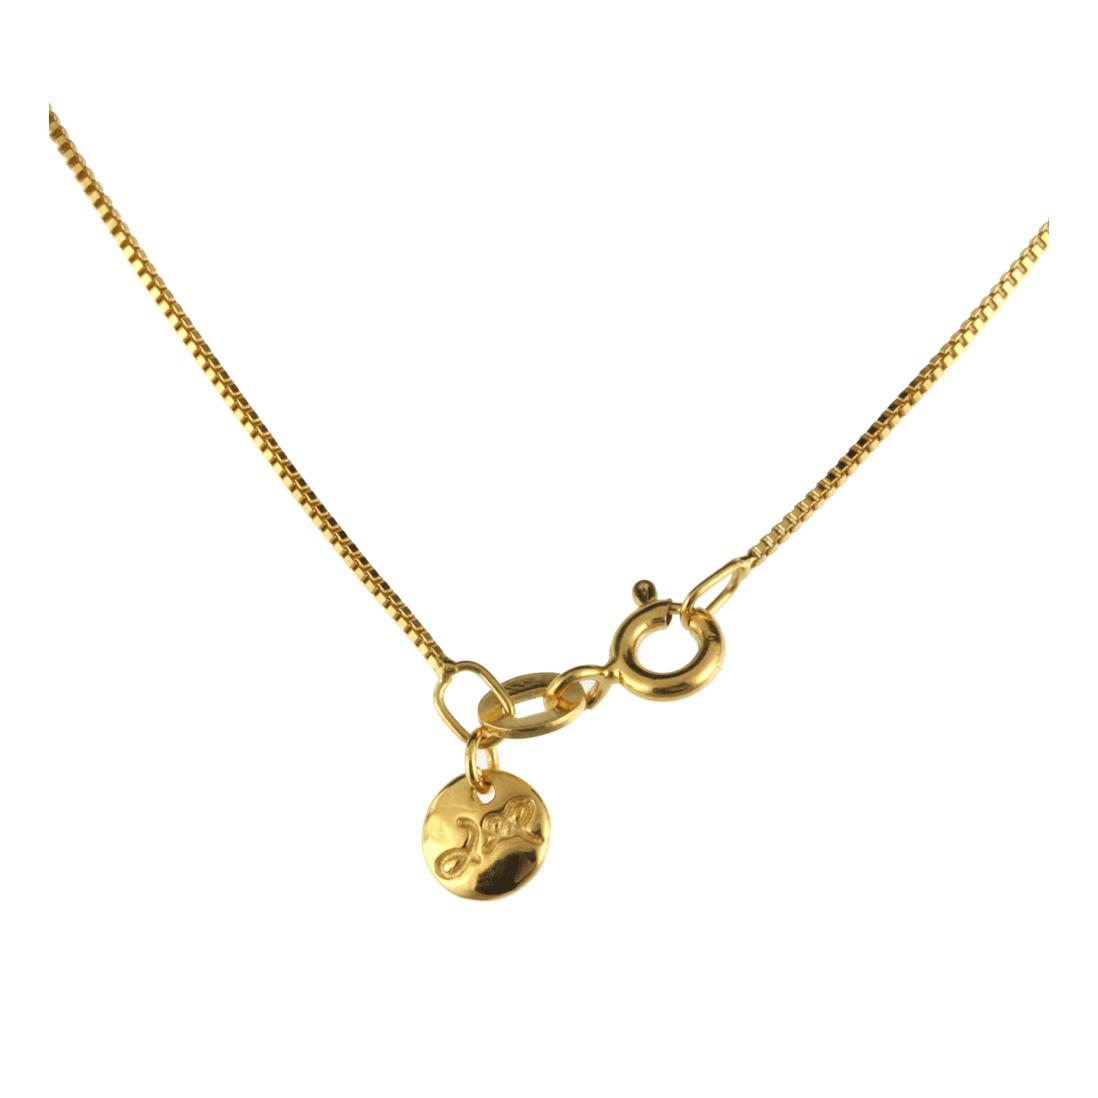 Jana Reinhardt Gold Plated Silver Hummingbird Necklace - 42cm